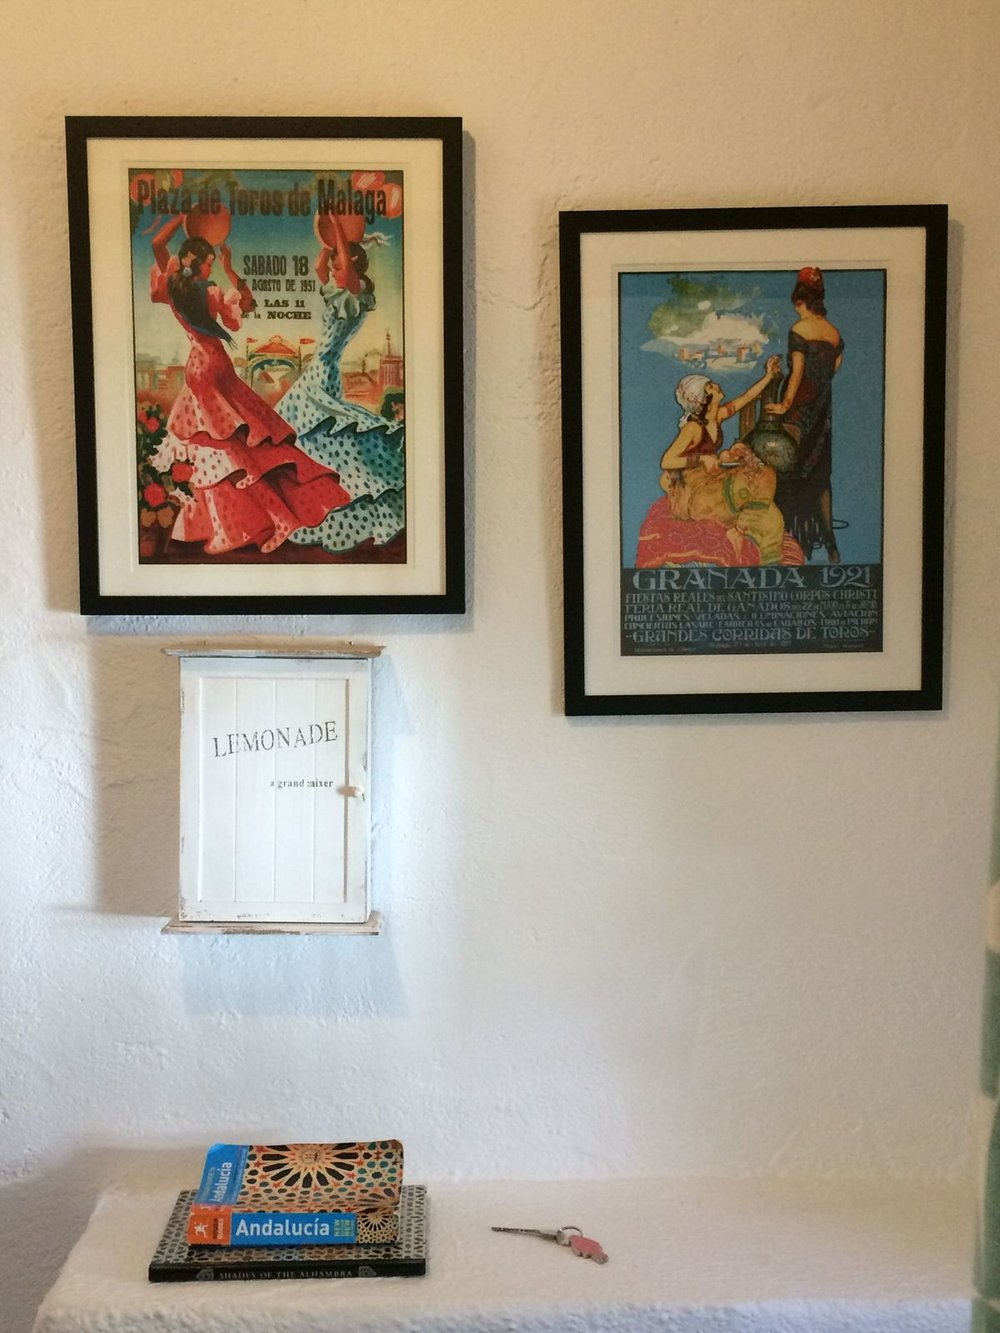 Welcome to Villa Amapola - Malaga and Granada fiesta posters